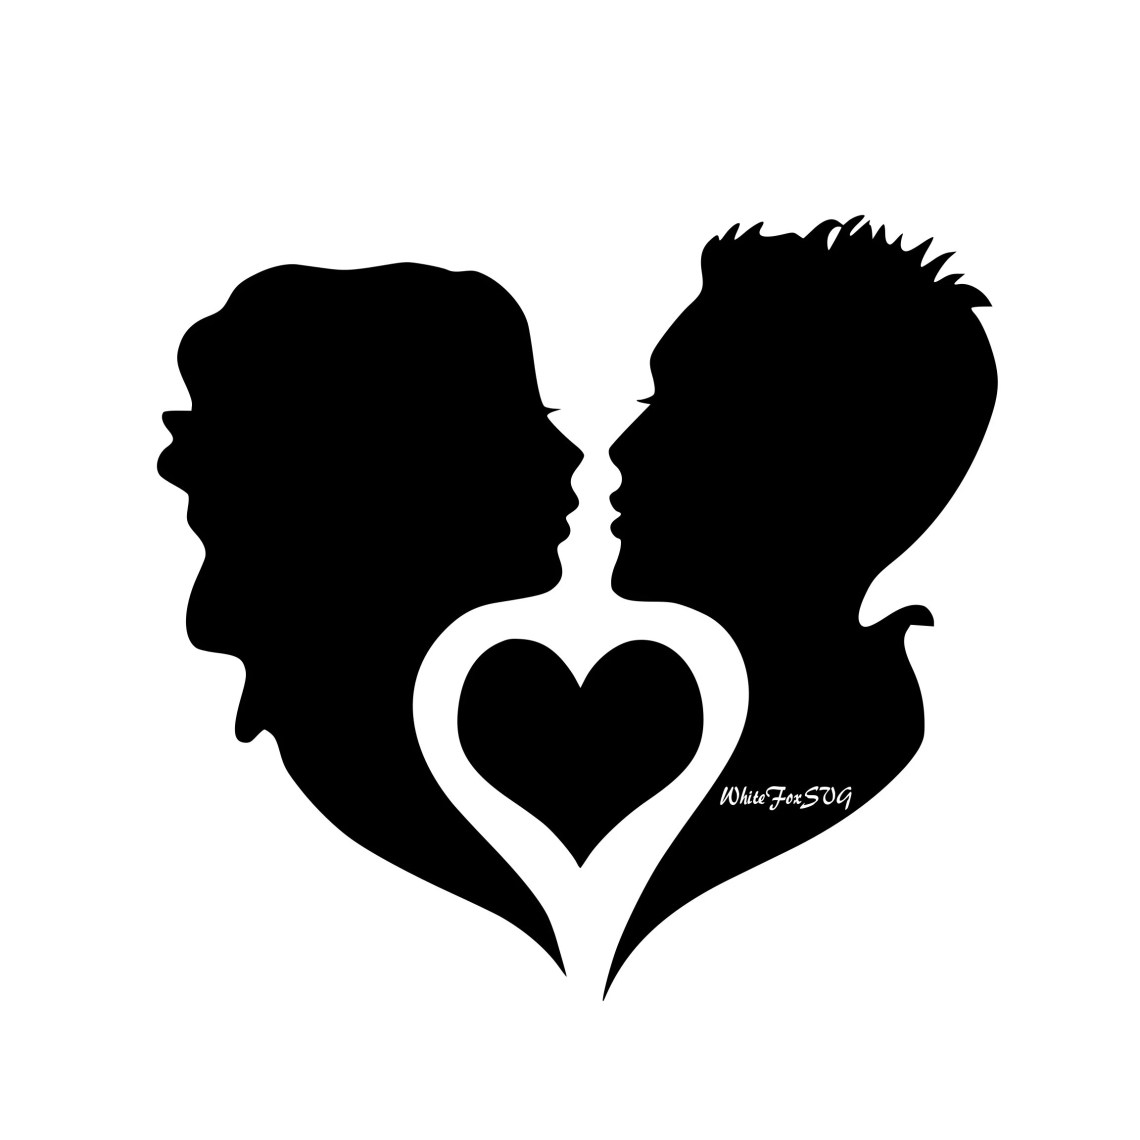 Download Couple svg cute lovers couple heart love heart kiss svg   Etsy